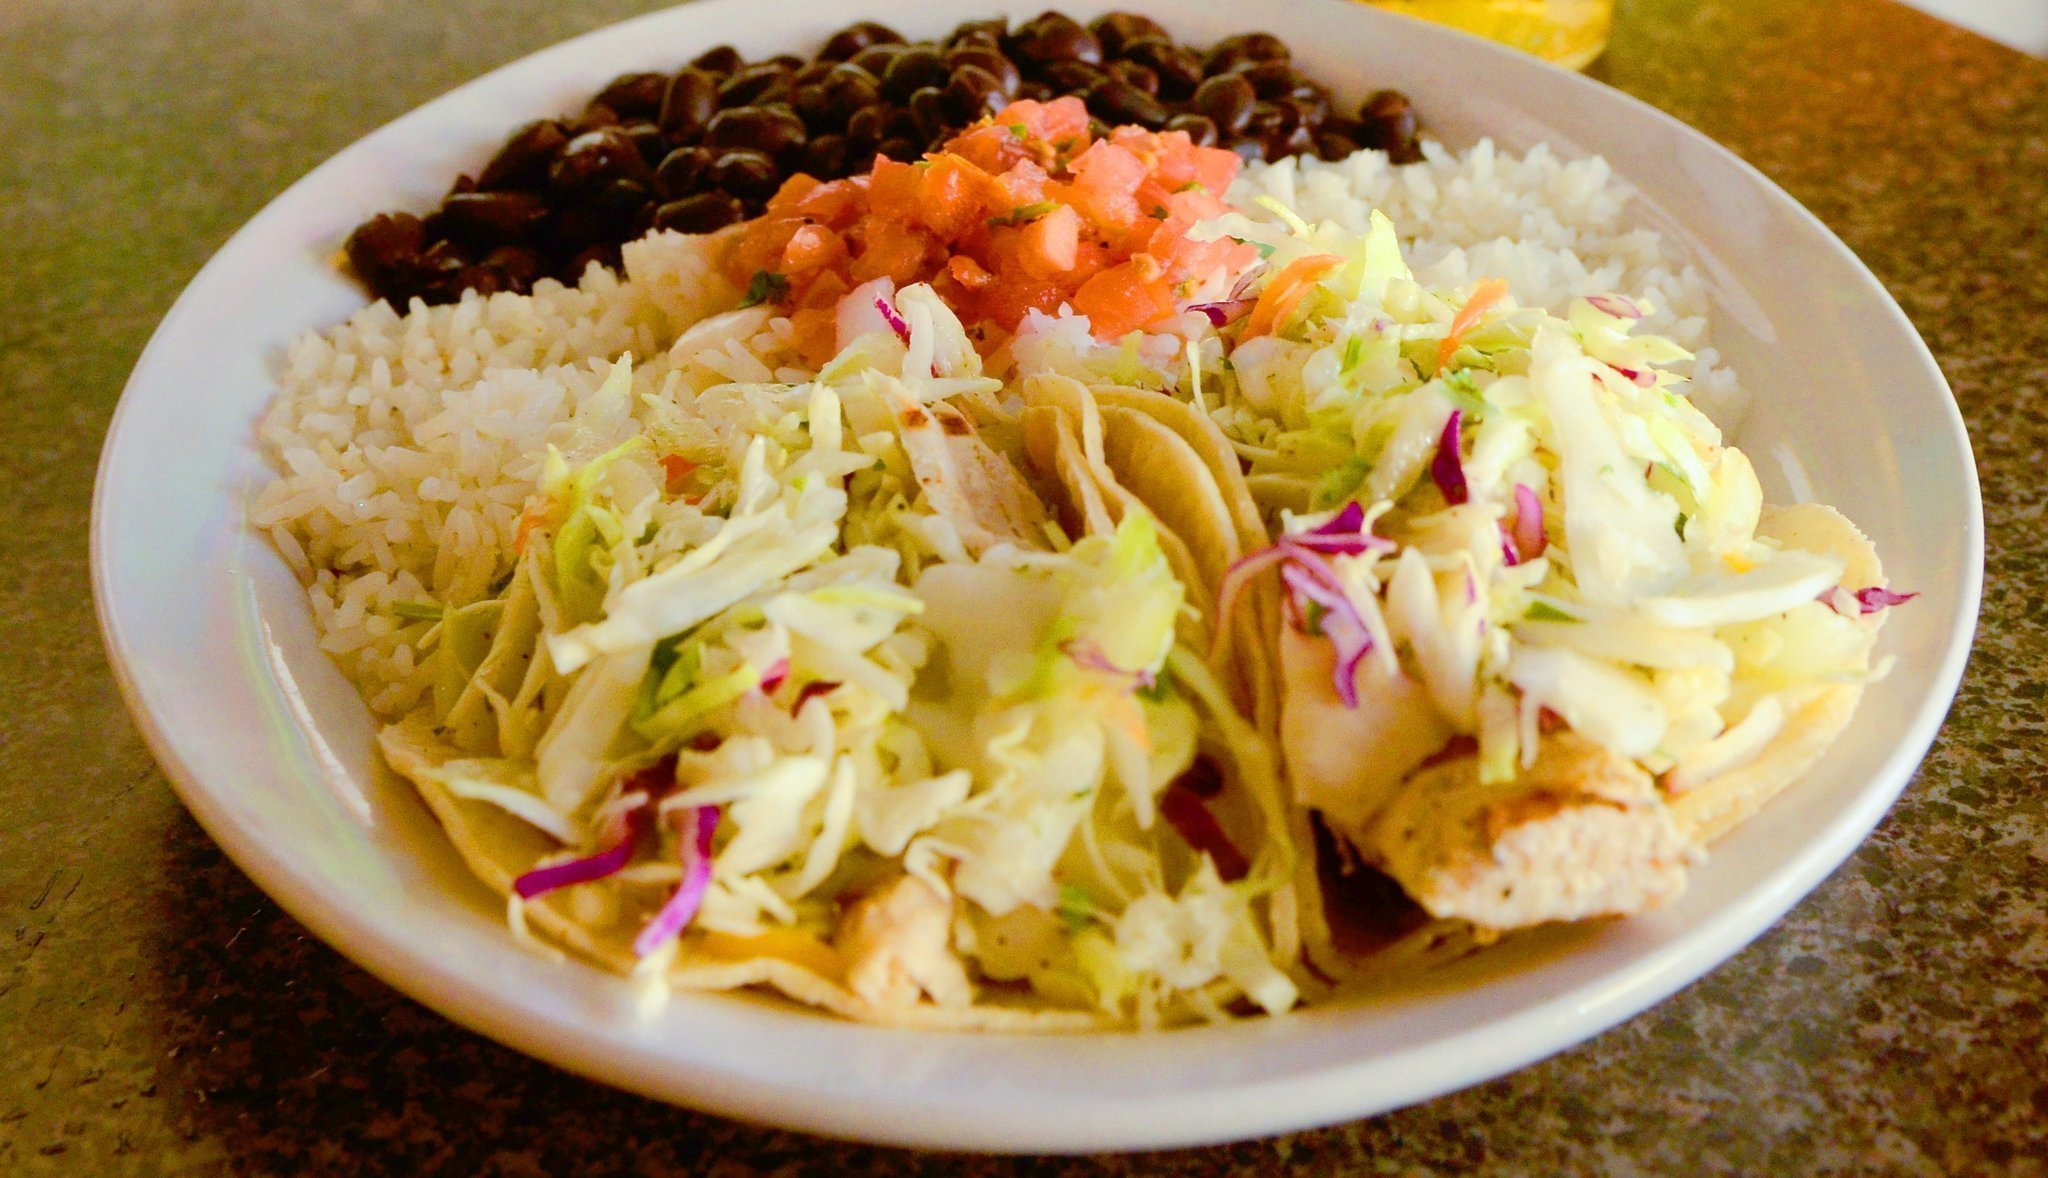 Wahoo's offers fish tacos and a whole lot more in La Jolla and Southern California - La Jolla Light